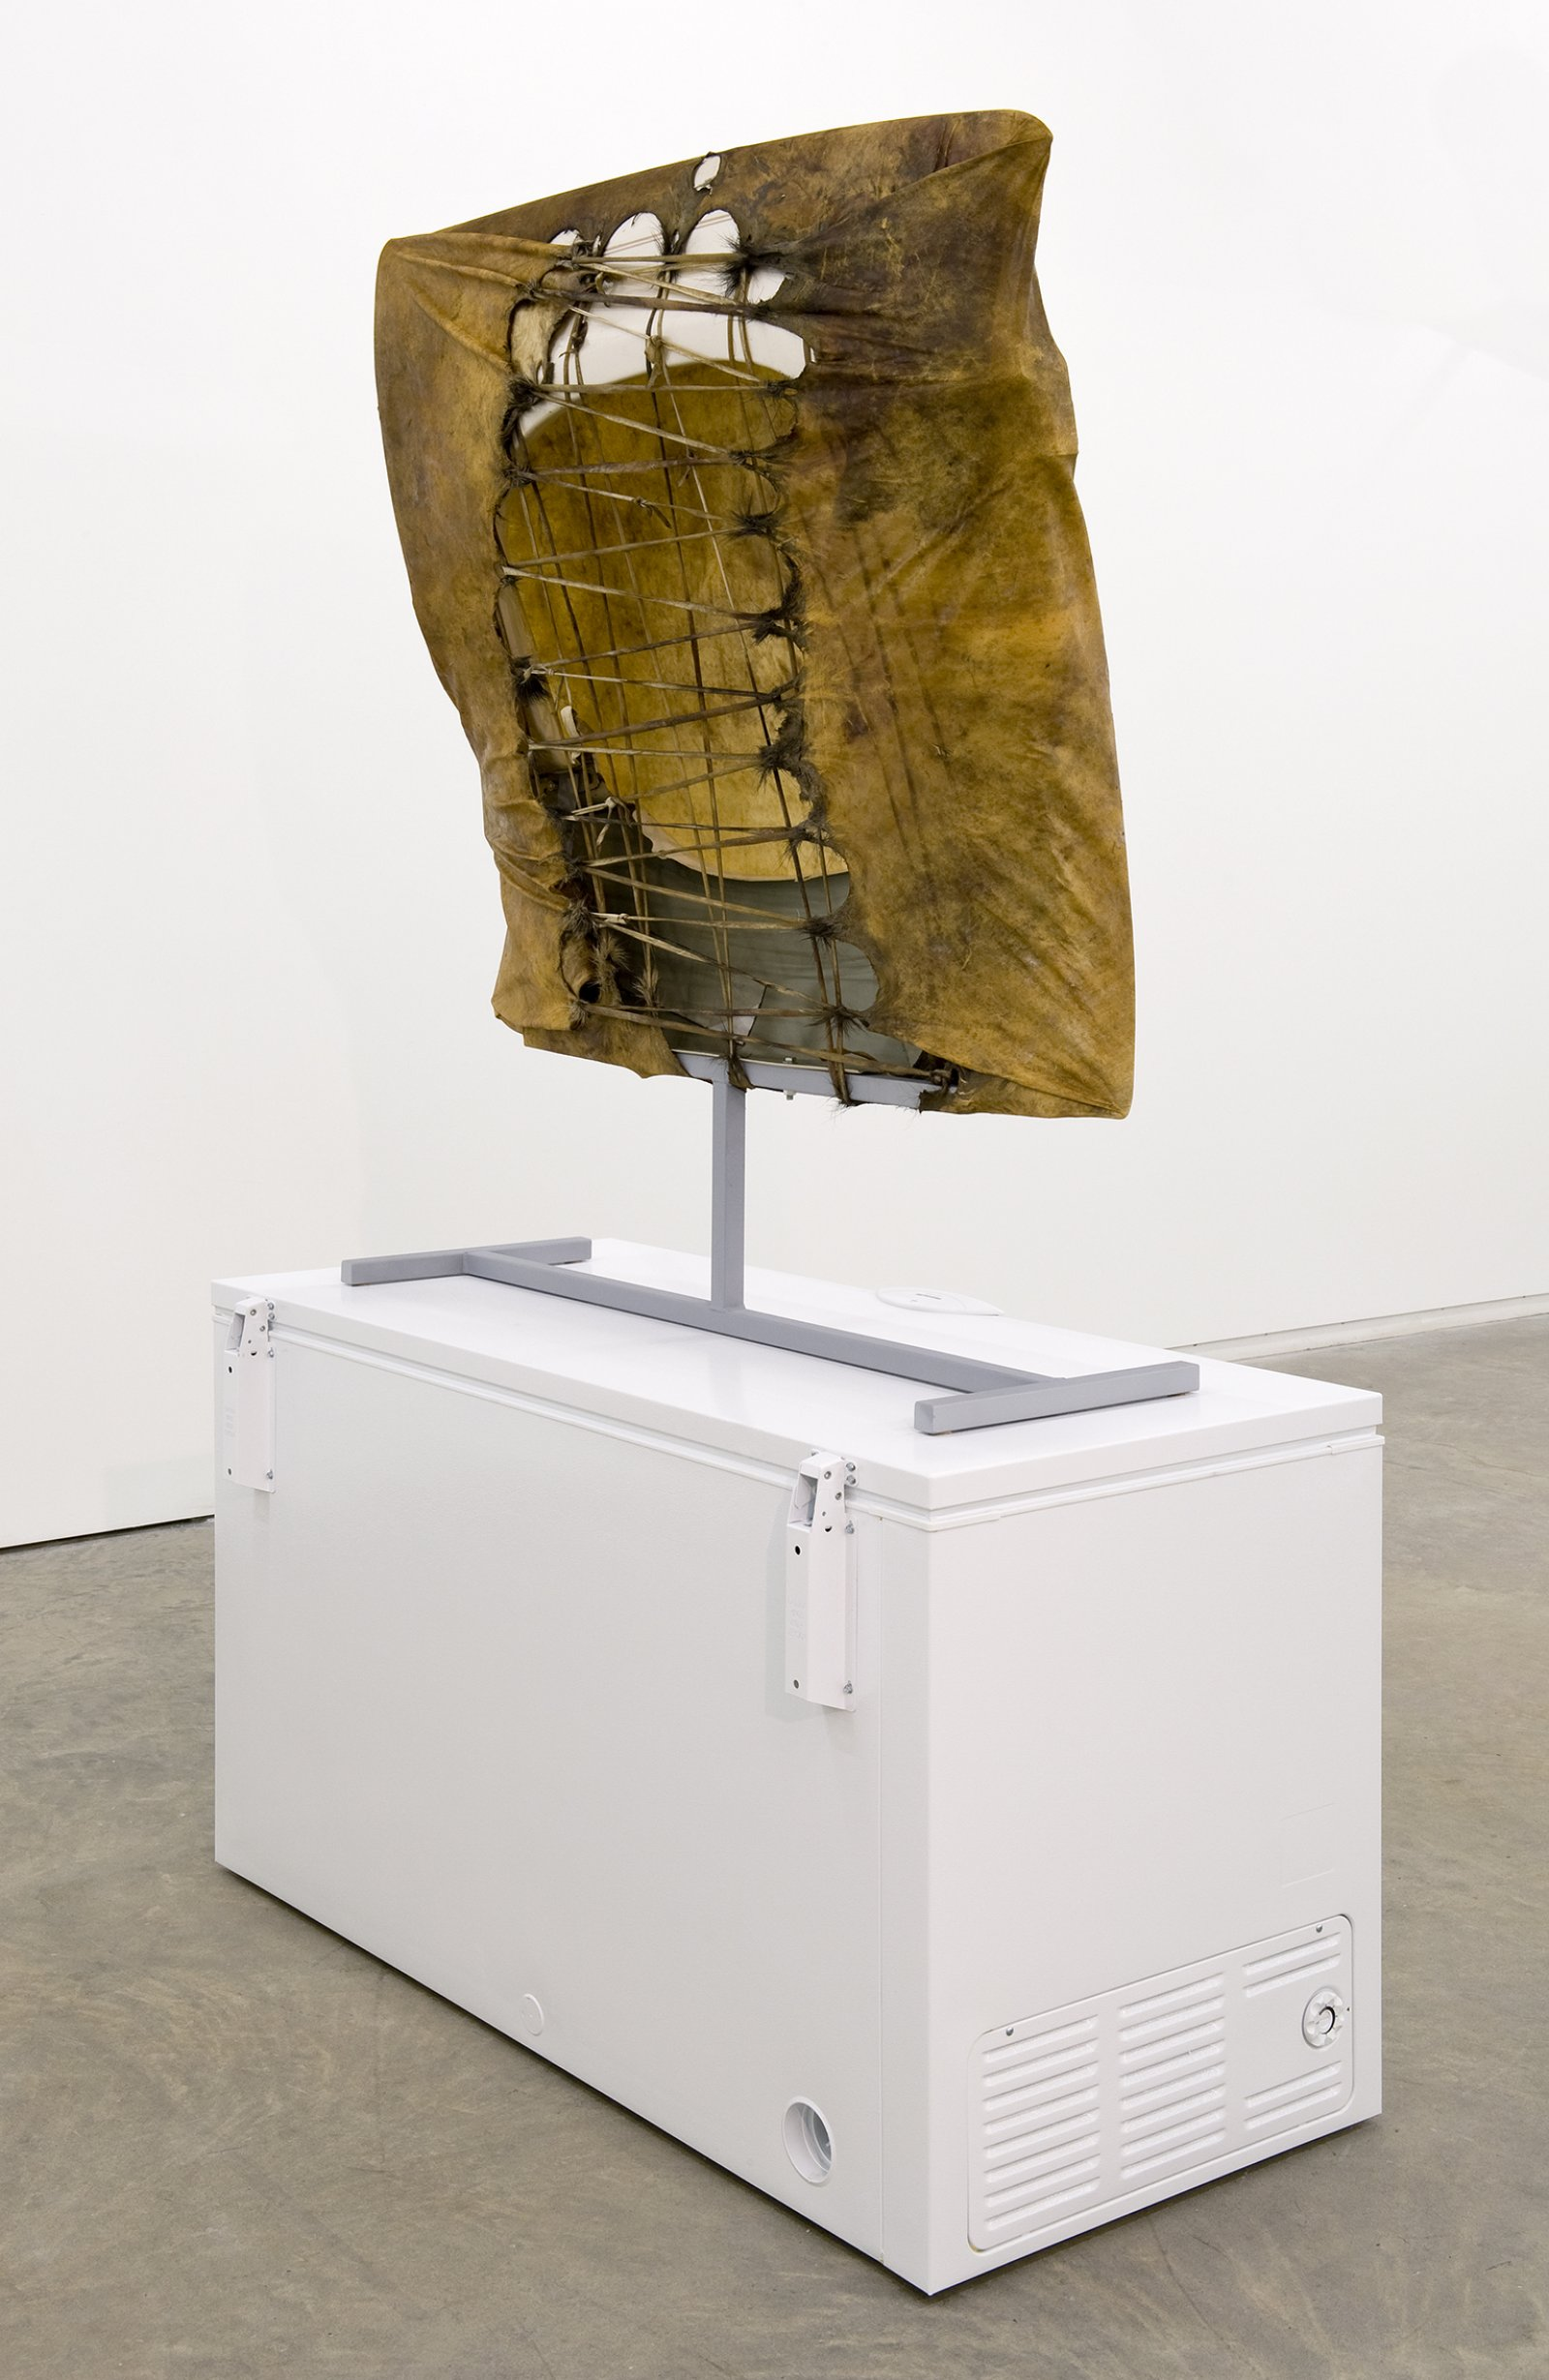 Brian Jungen, Tomorrow, Repeated, 2010, moose hide, car fenders, chest freezer, steel, 96 x 61 x 30 in. (244 x 156 x 75 cm) by Brian Jungen